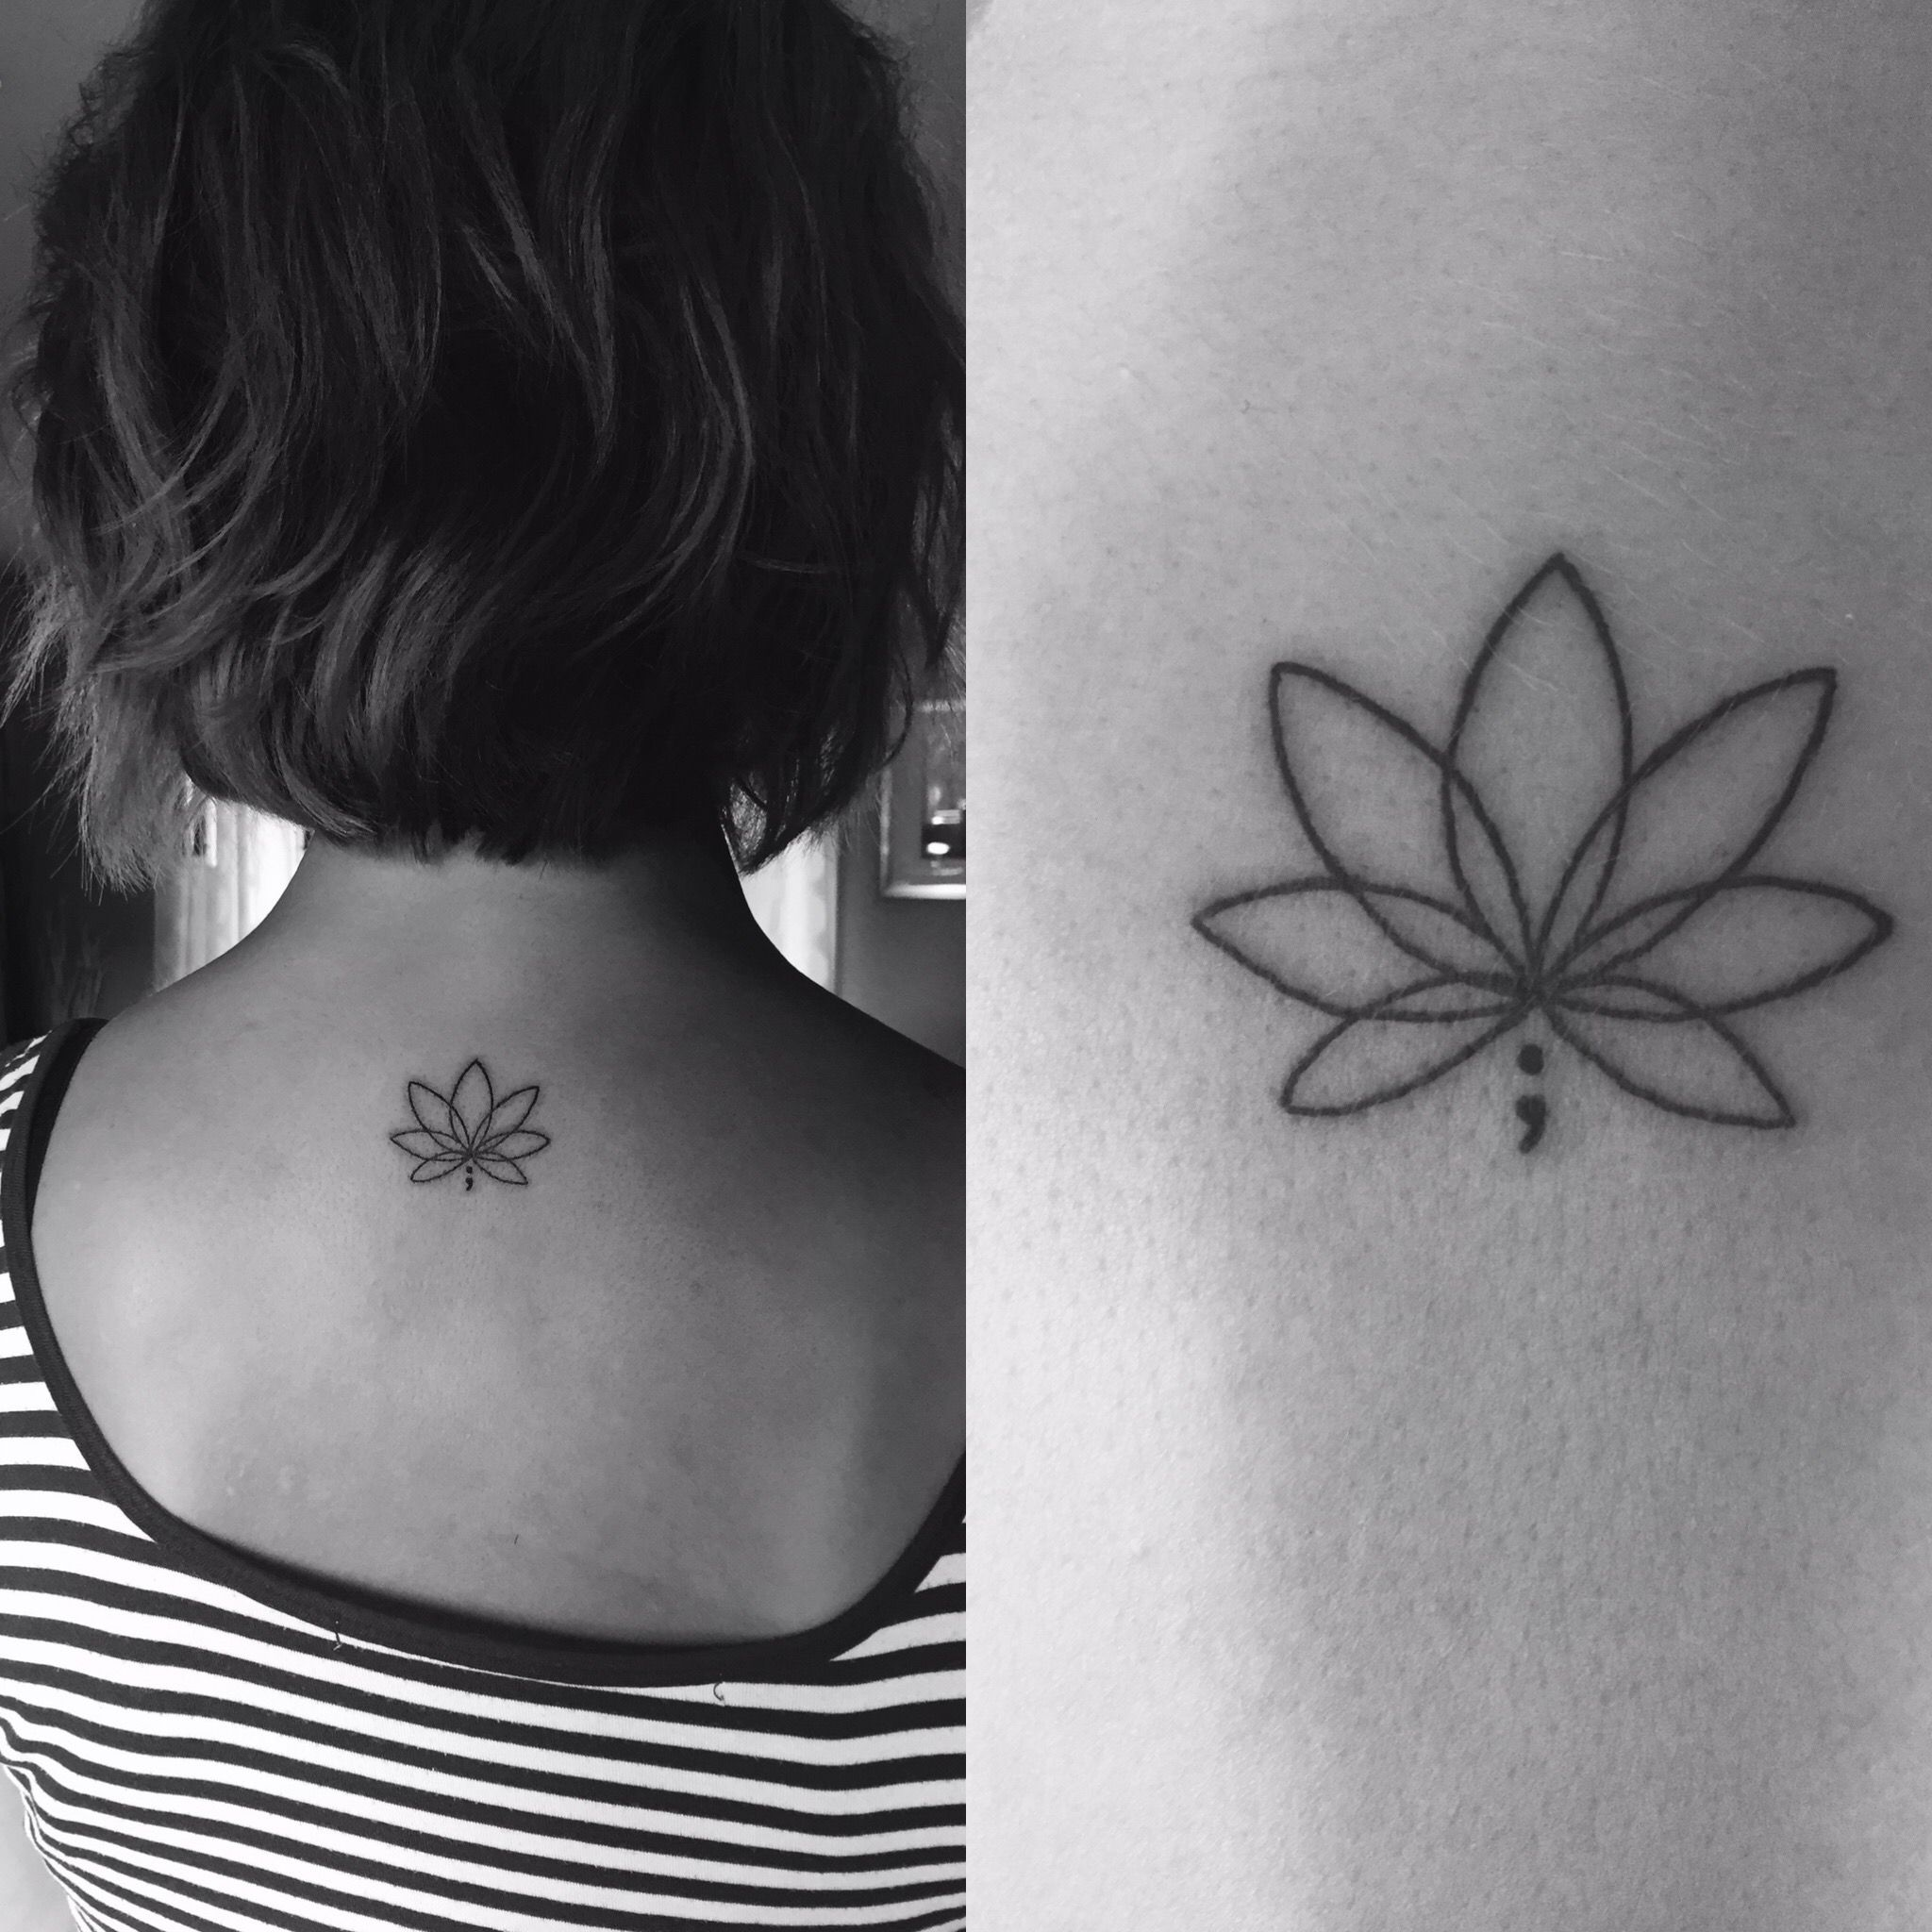 My First But Not Last Tattoo A Lotus Flower A Rebirth New